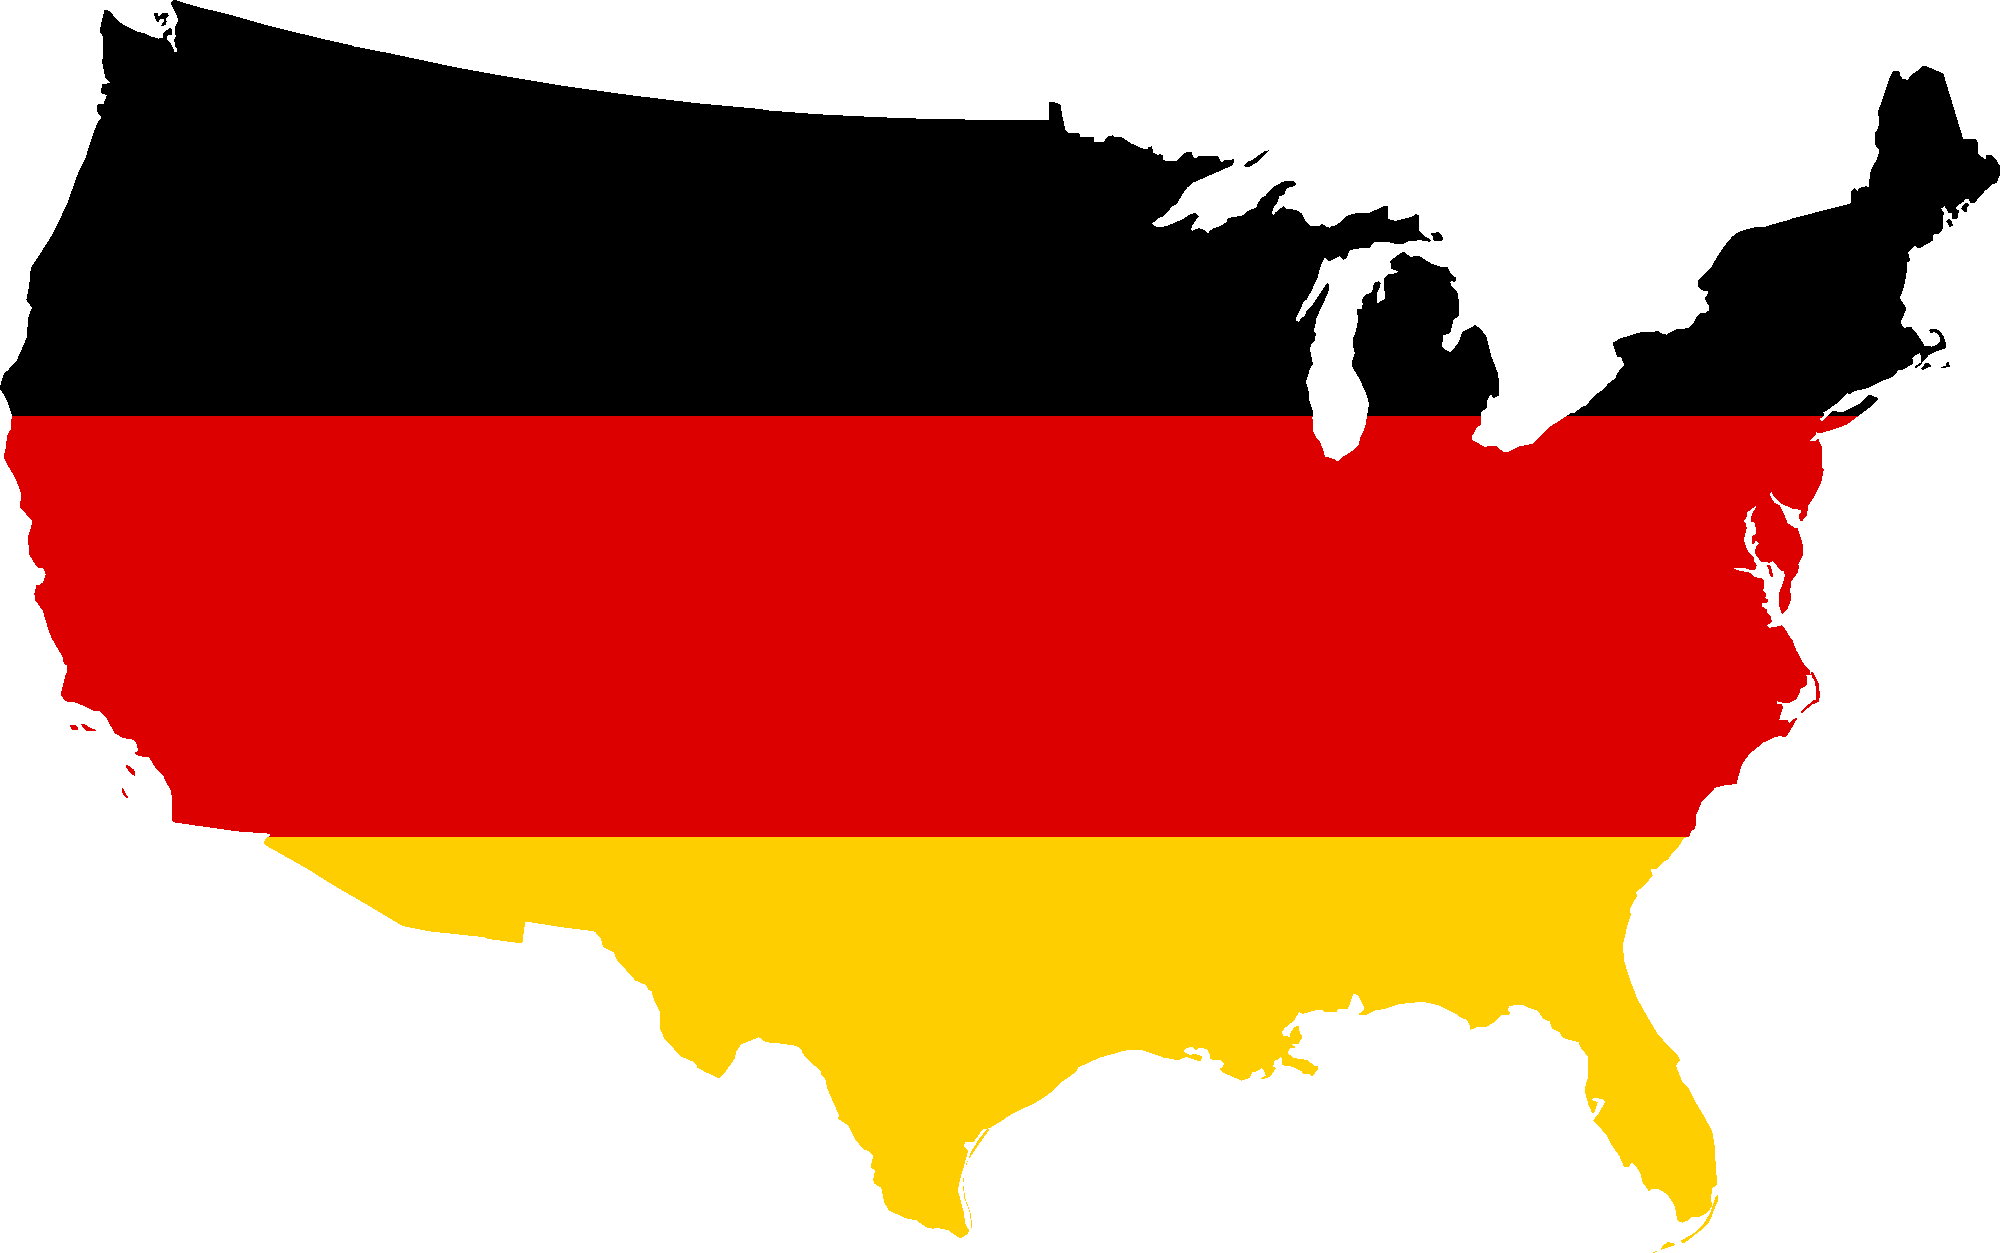 Germany Png Hdpng.com 2000 - Germany, Transparent background PNG HD thumbnail